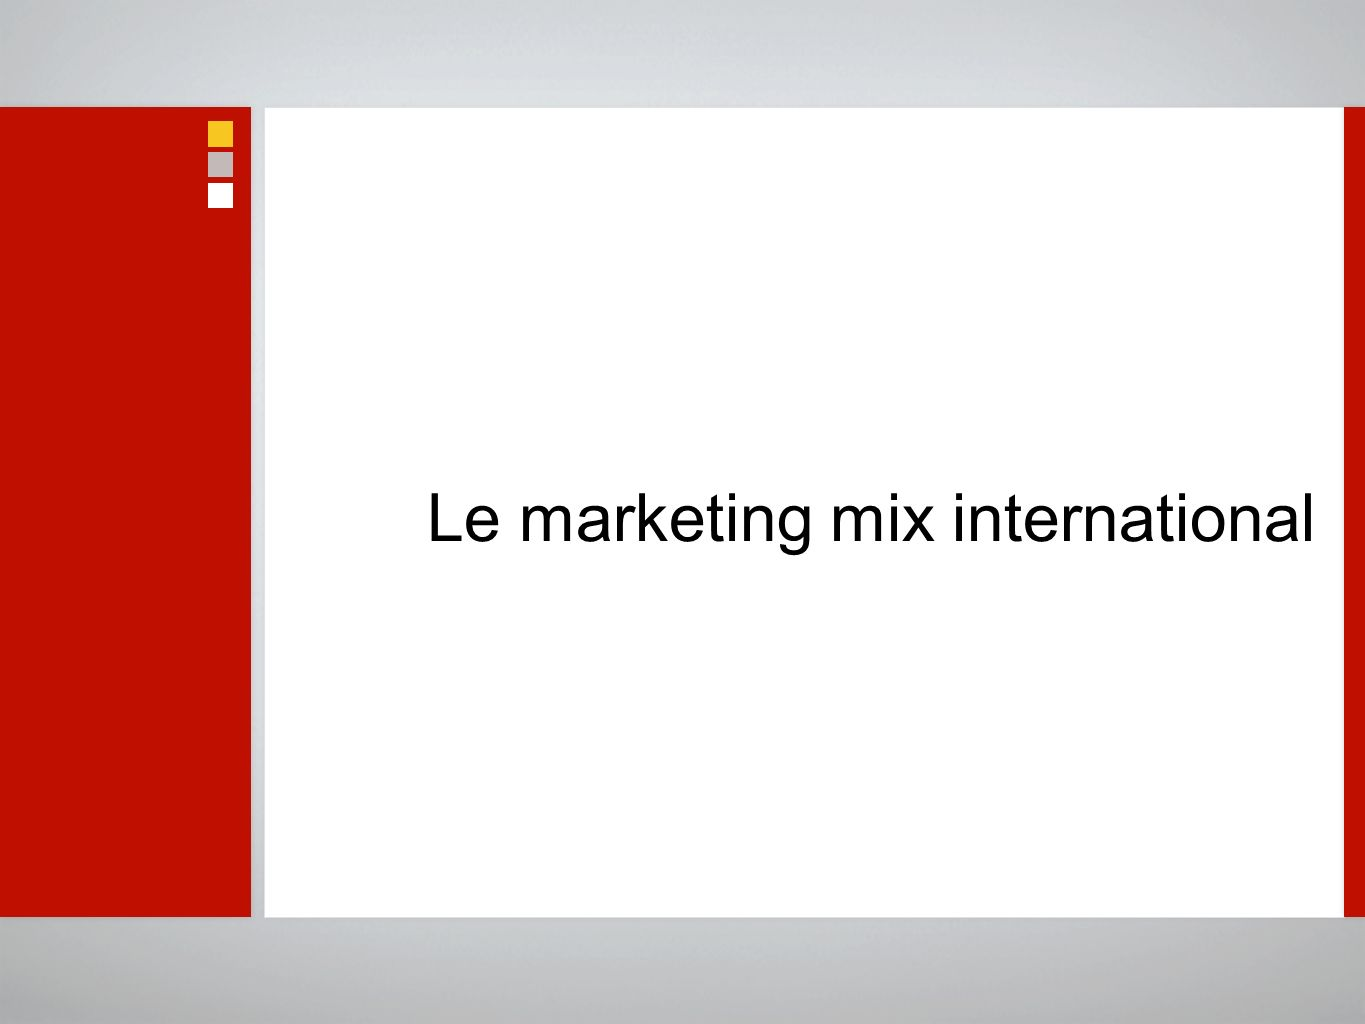 Le marketing mix international